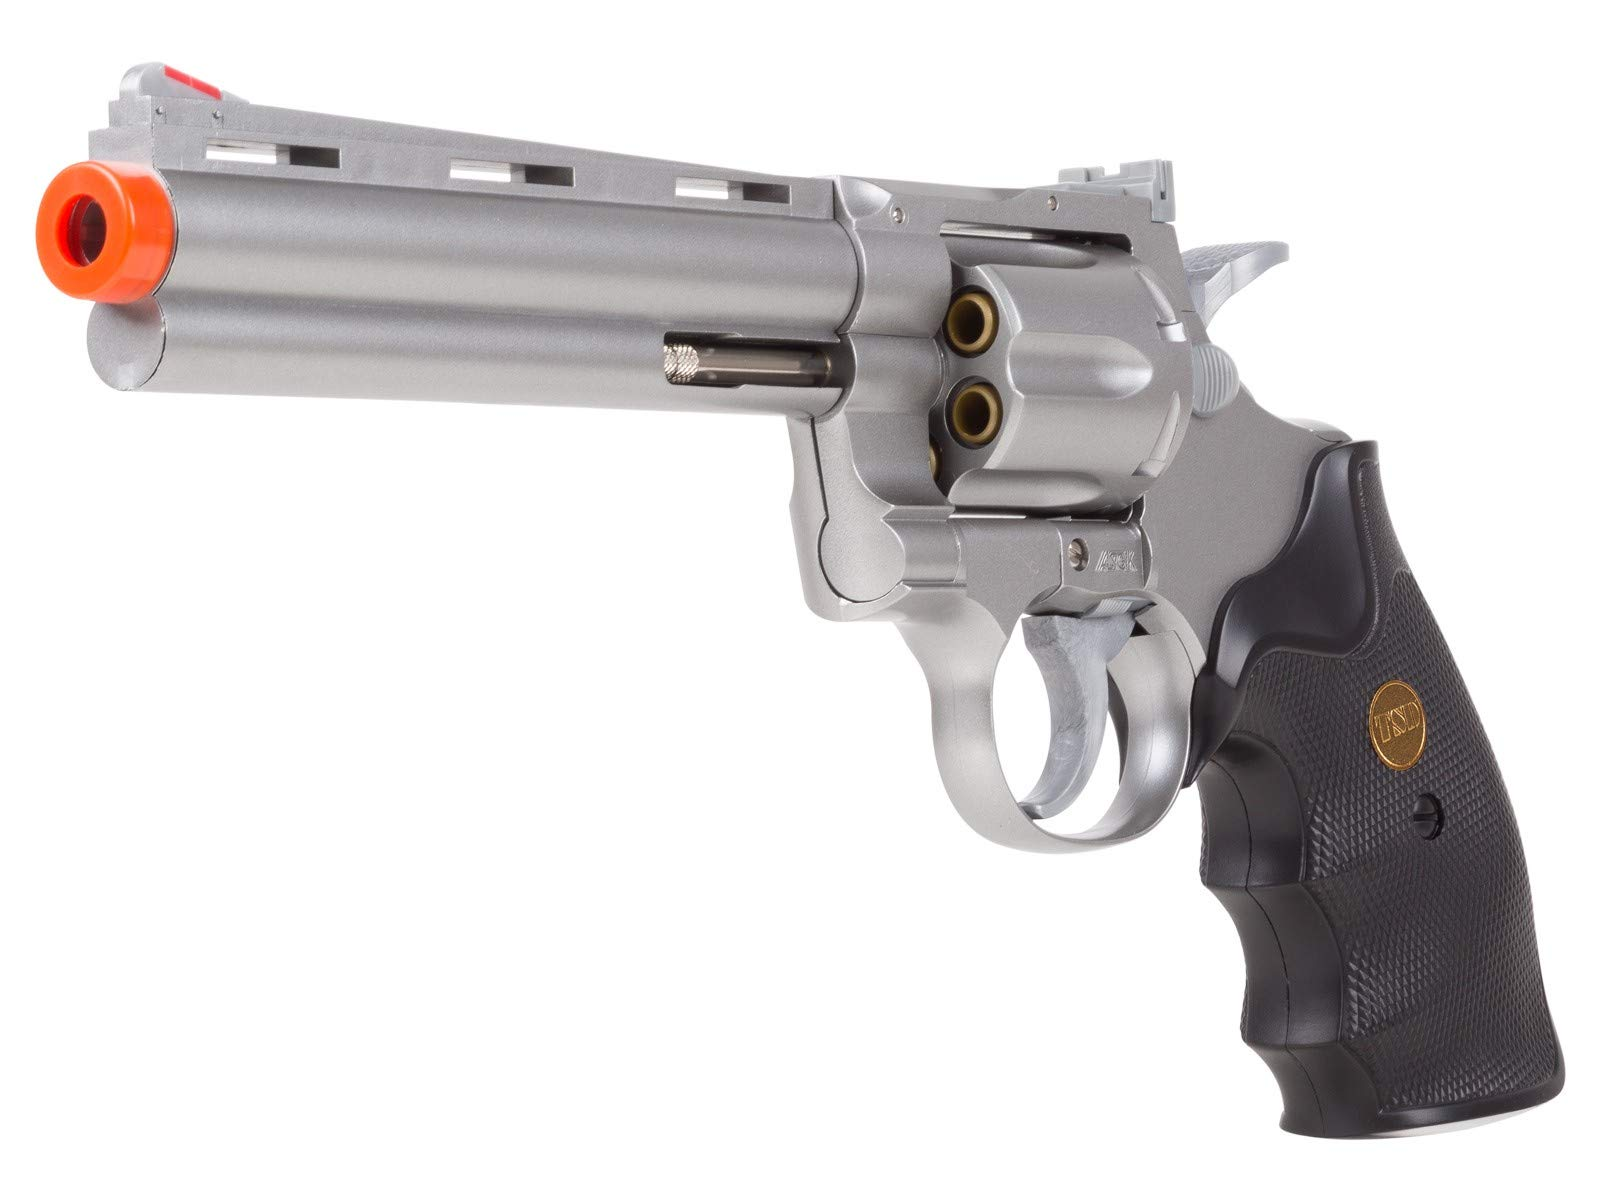 TSD Sports UA938S 6 Inch Spring Powered Airsoft Revolver (Silver) by TSD